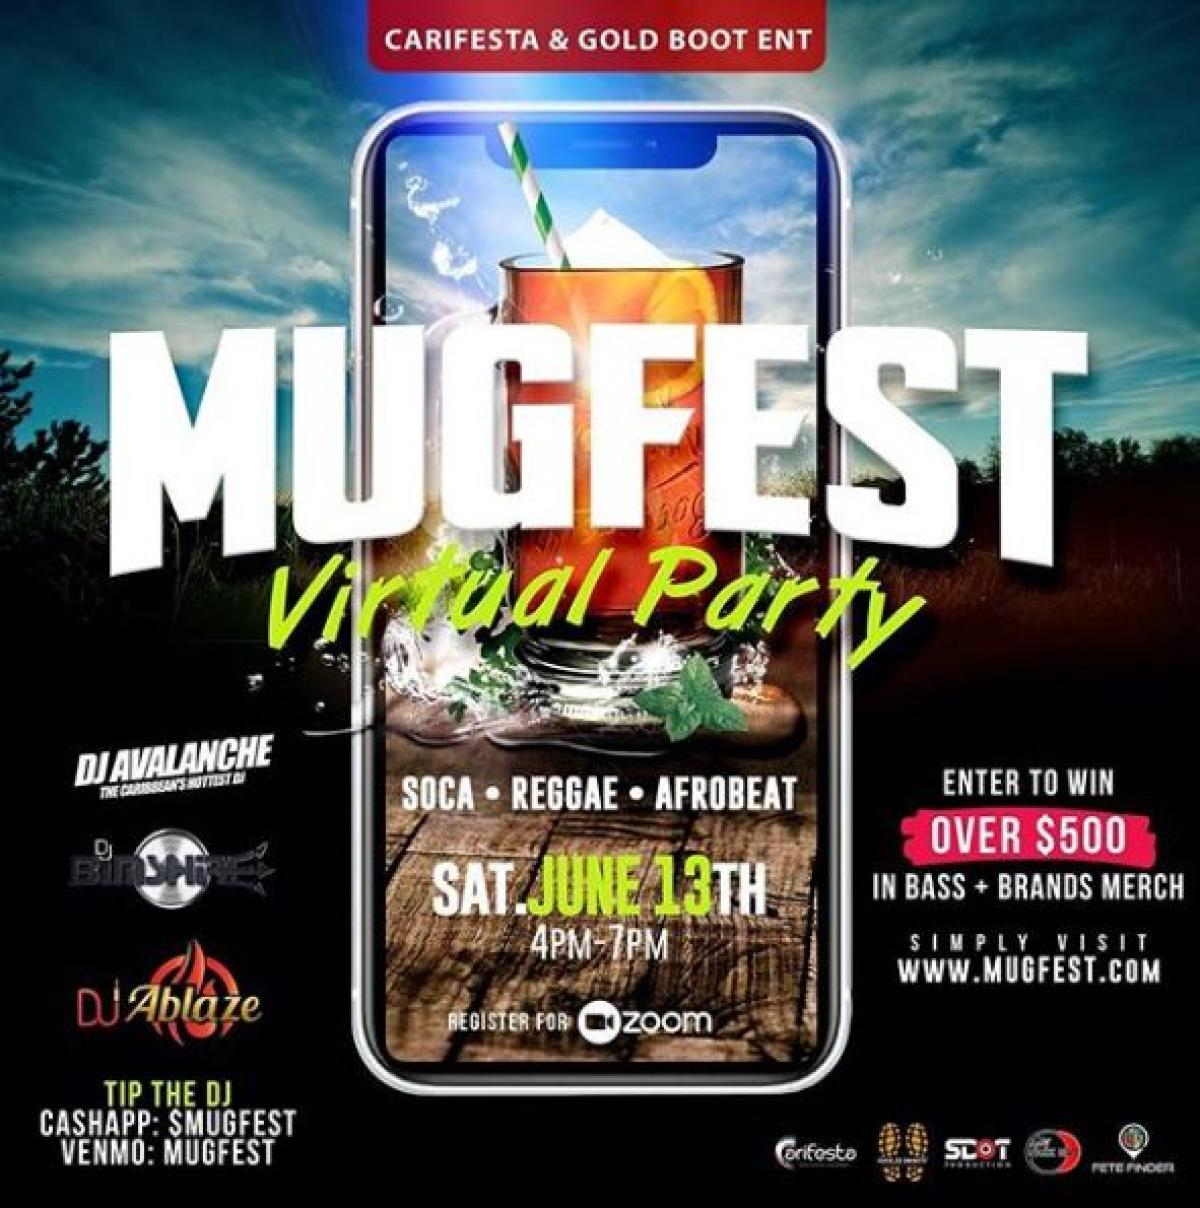 Mug Fest Virtual Party flyer or graphic.